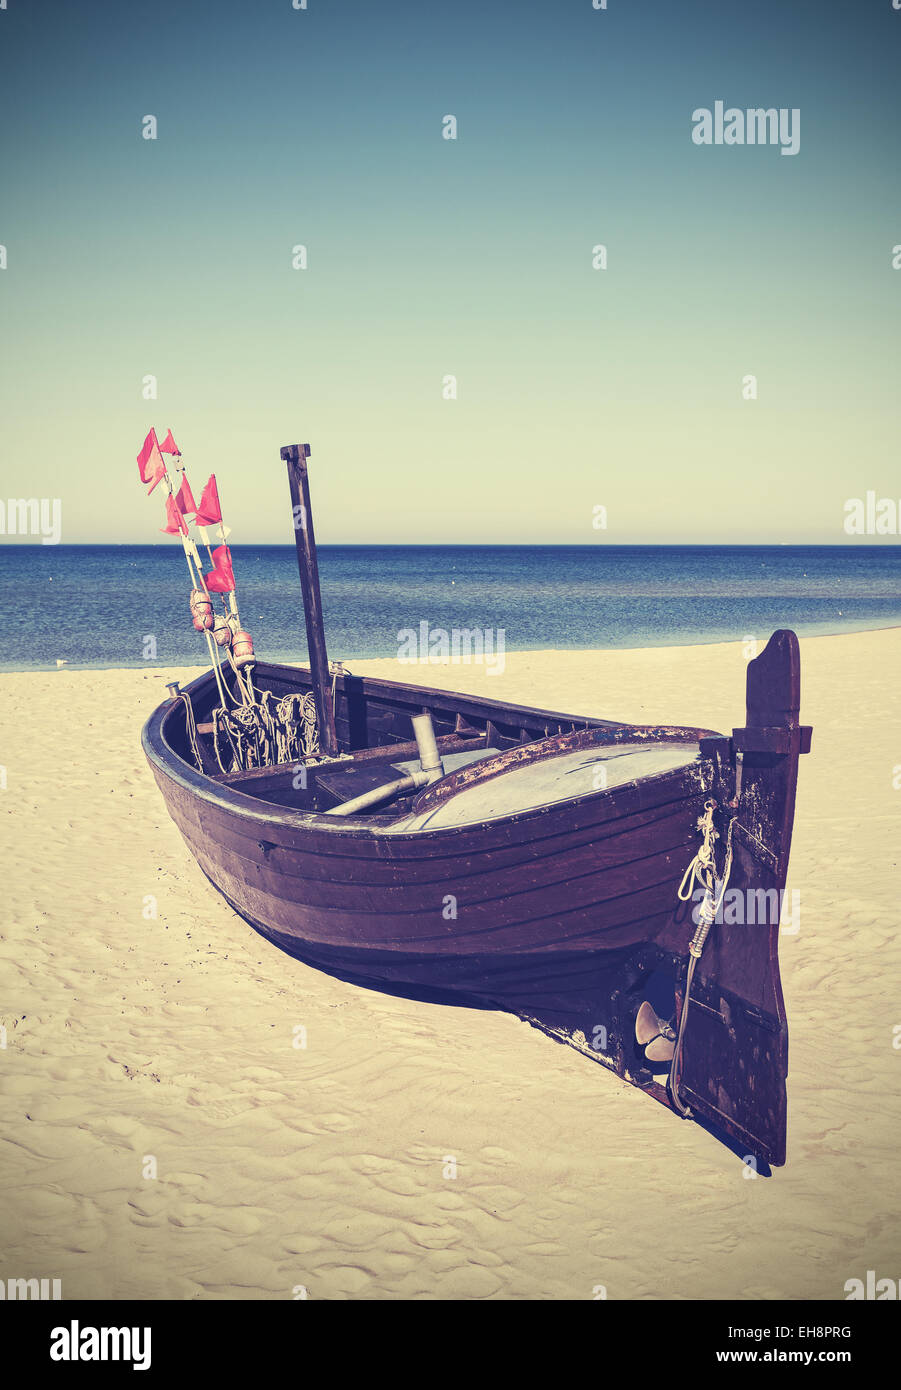 Retro filtered picture of fishing boat on the beach. - Stock Image